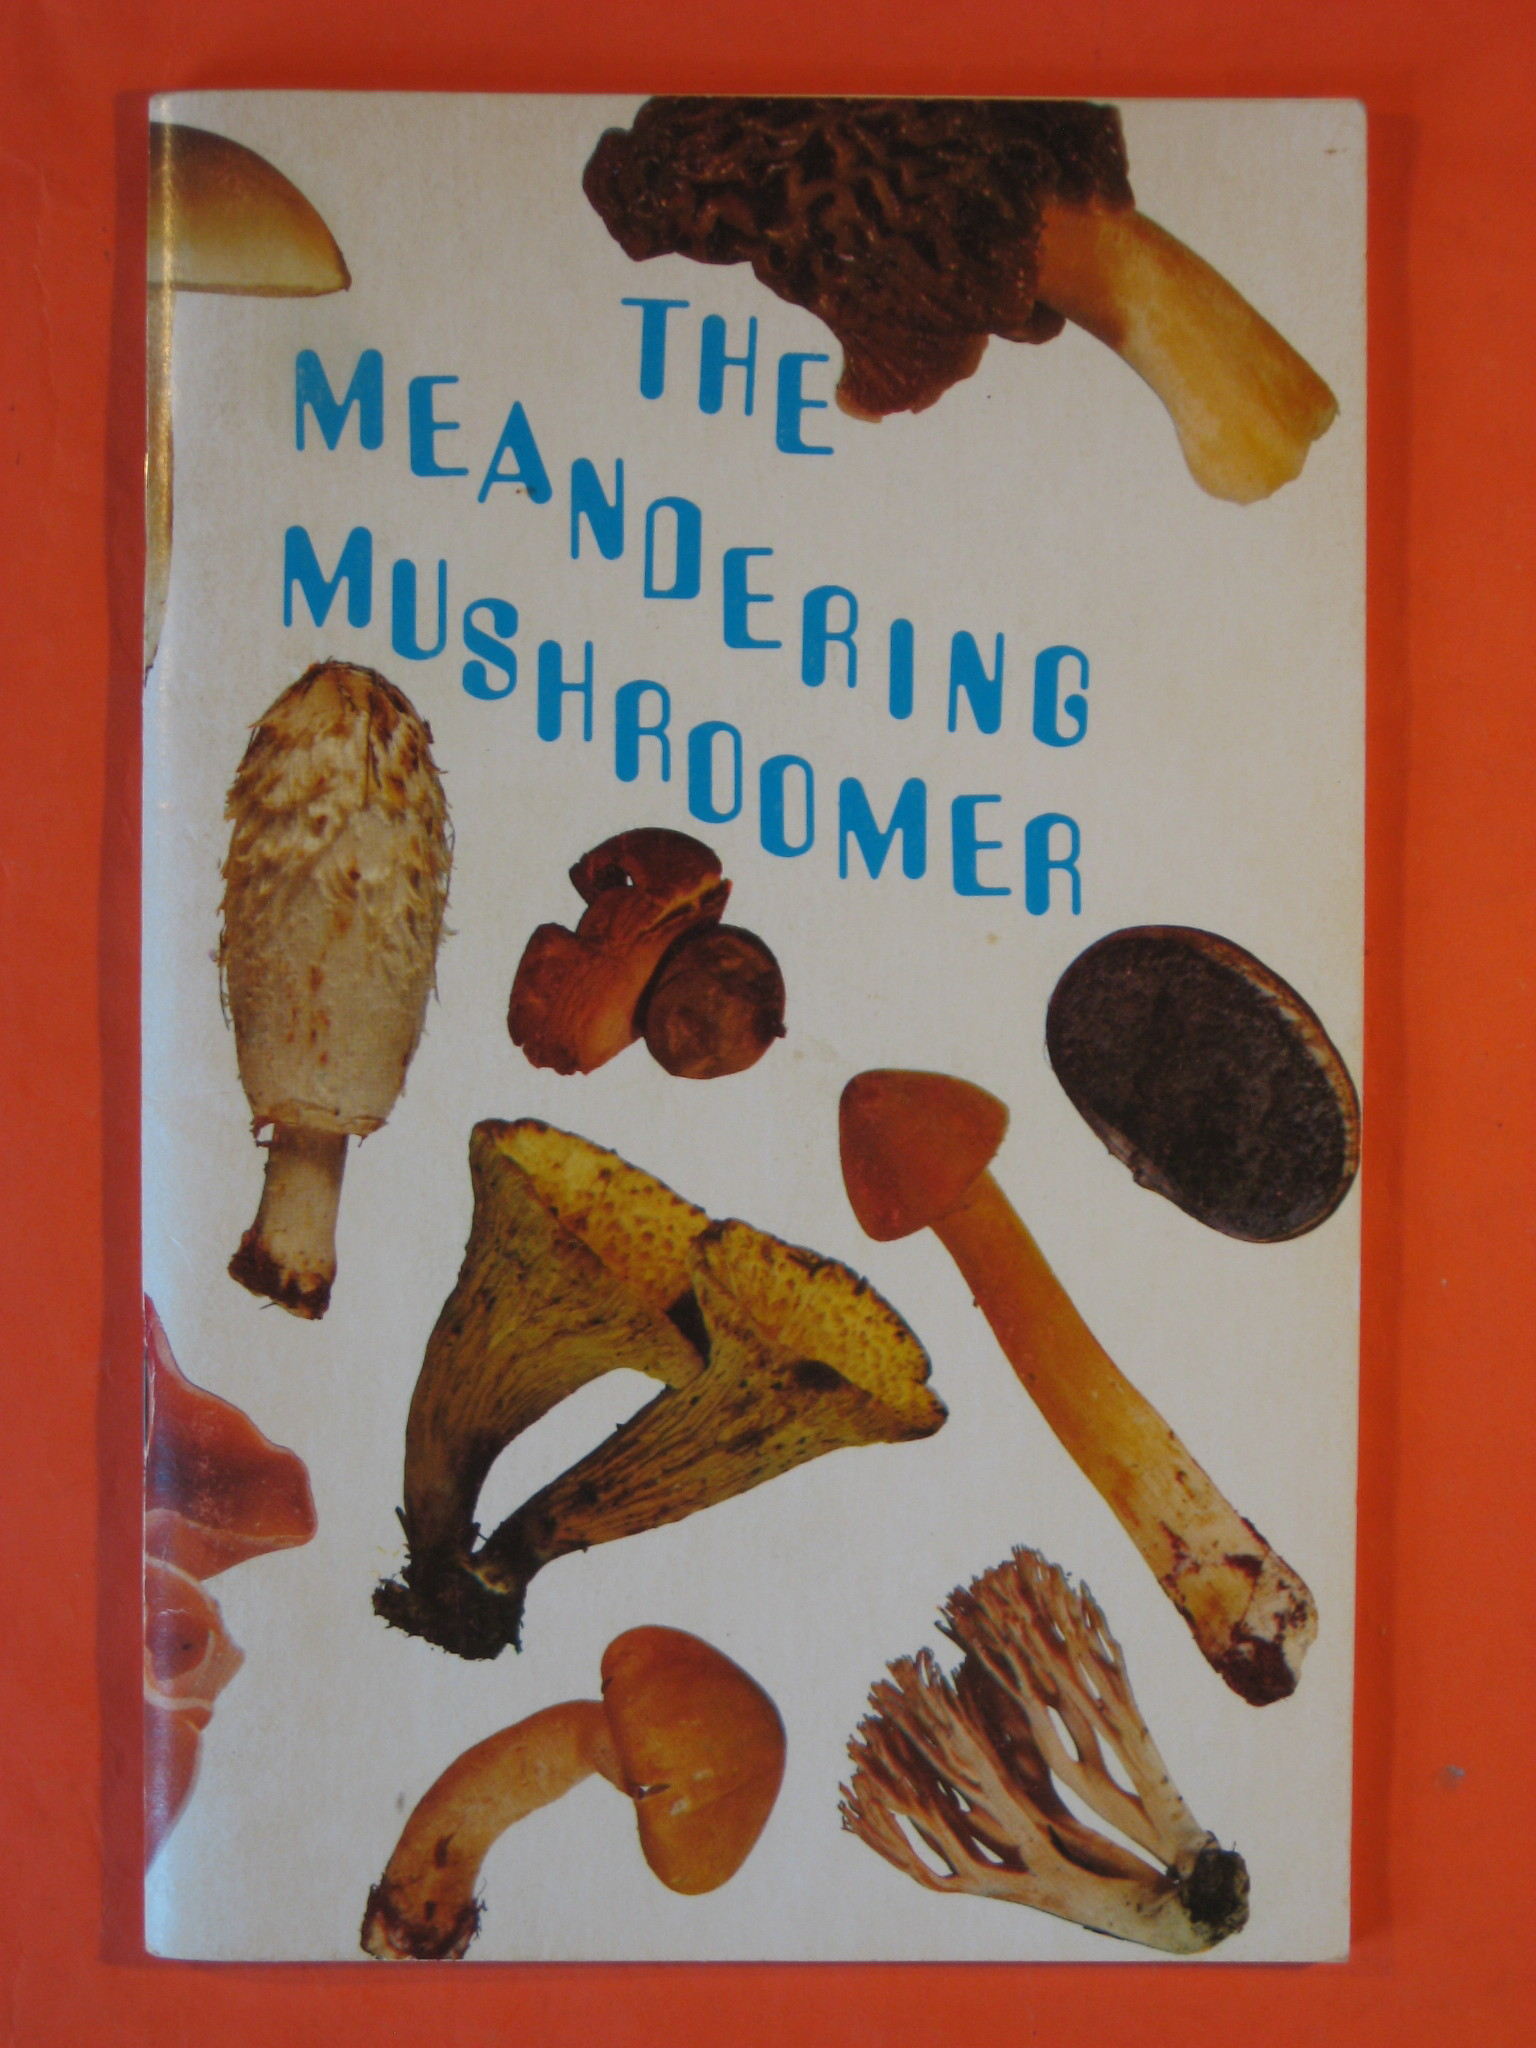 The Meandering Mushroomer, Graham, Dick